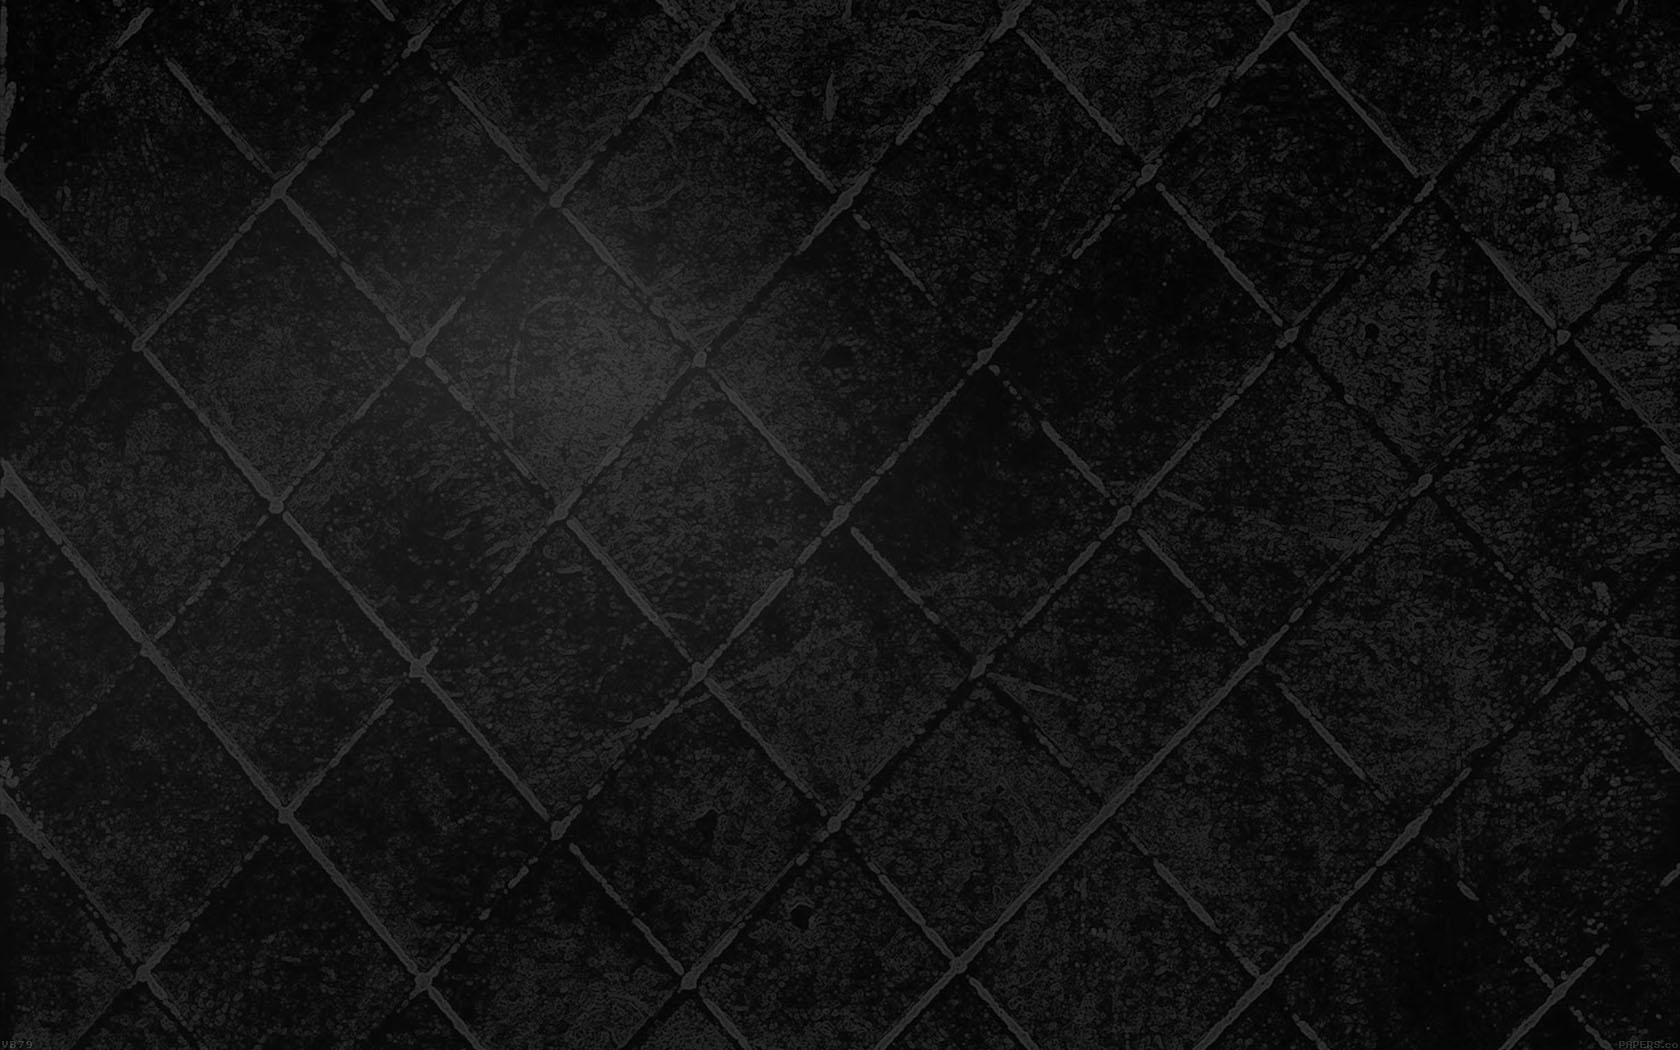 Winter Wallpaper For Iphone 4 Vb79 Wallpaper Dark Black Grunge Pattern Papers Co